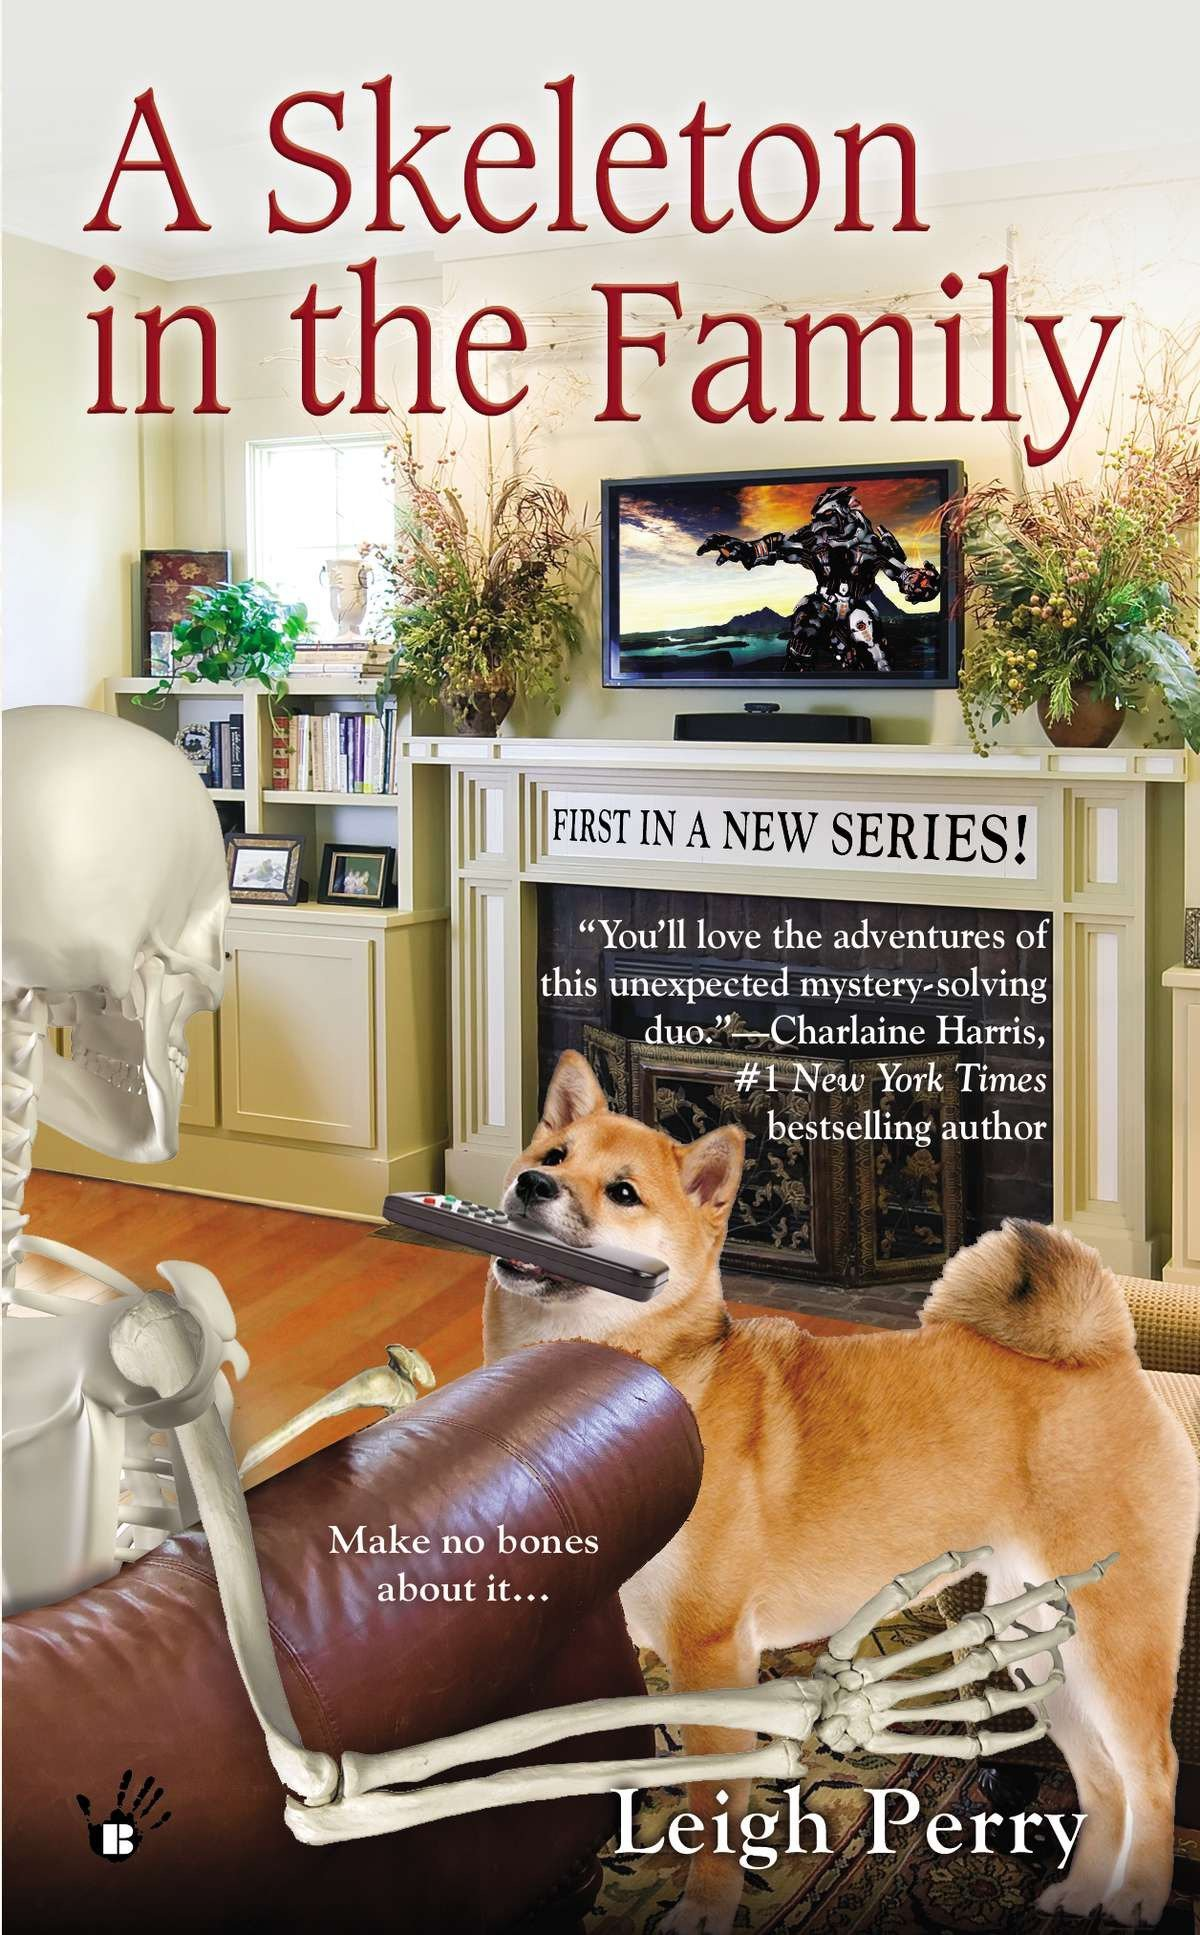 A Skeleton in the Family (A Family Skeleton Mystery) ebook